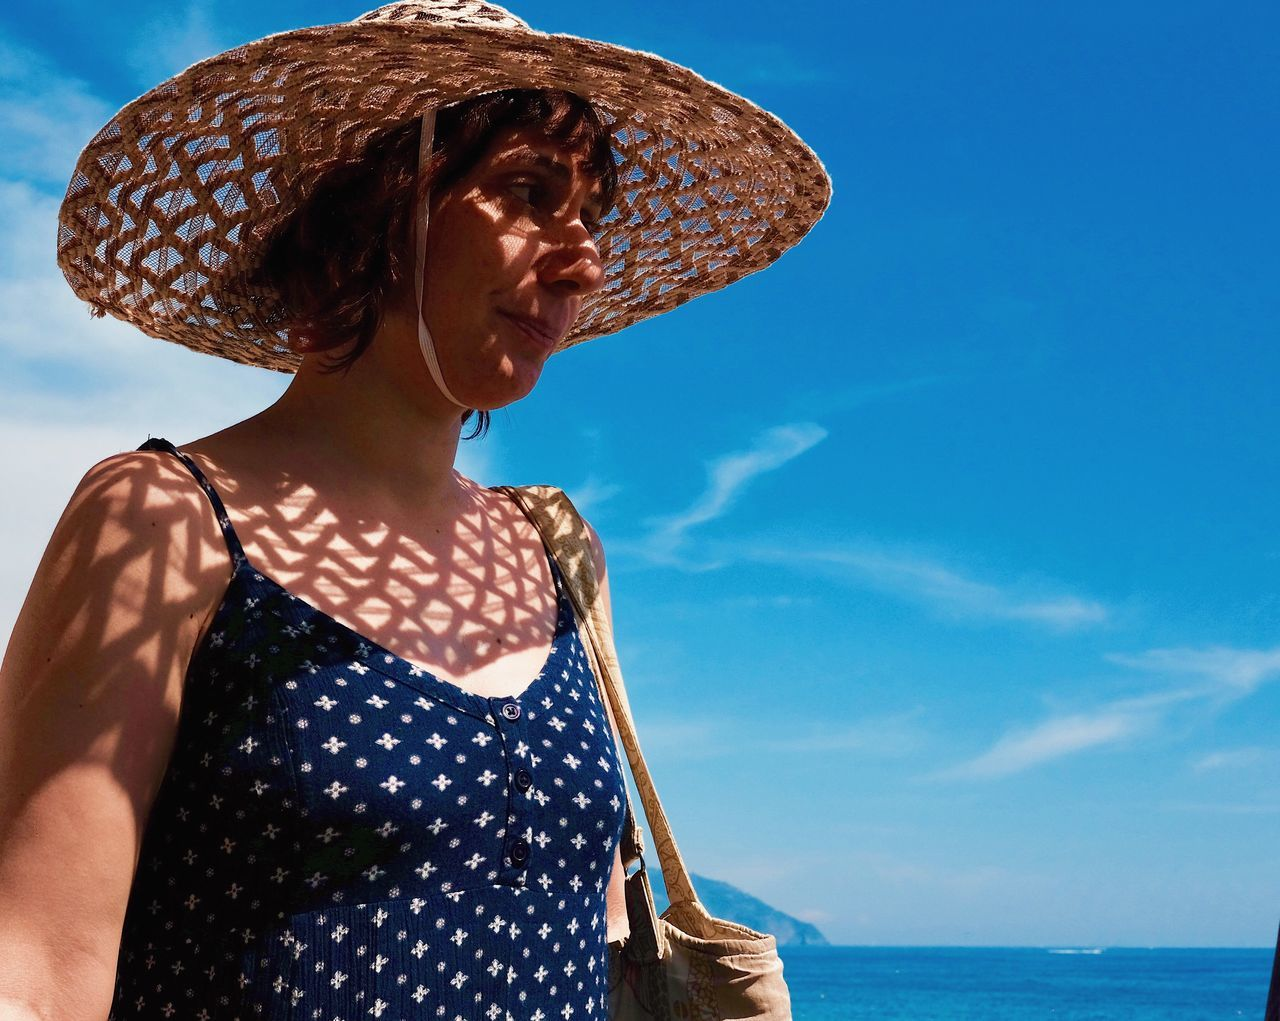 Sun patterns. Hat Sun Hat One Person Straw Hat Sky Outdoors Mid Adult Mid Adult Women Leisure Activity Lifestyles Real People Blue Young Adult Young Women Nature Day Casual Clothing Standing Sea Vacations Live For The Story Place Of Heart The Street Photographer - 2017 EyeEm Awards The Portraitist - 2017 EyeEm Awards